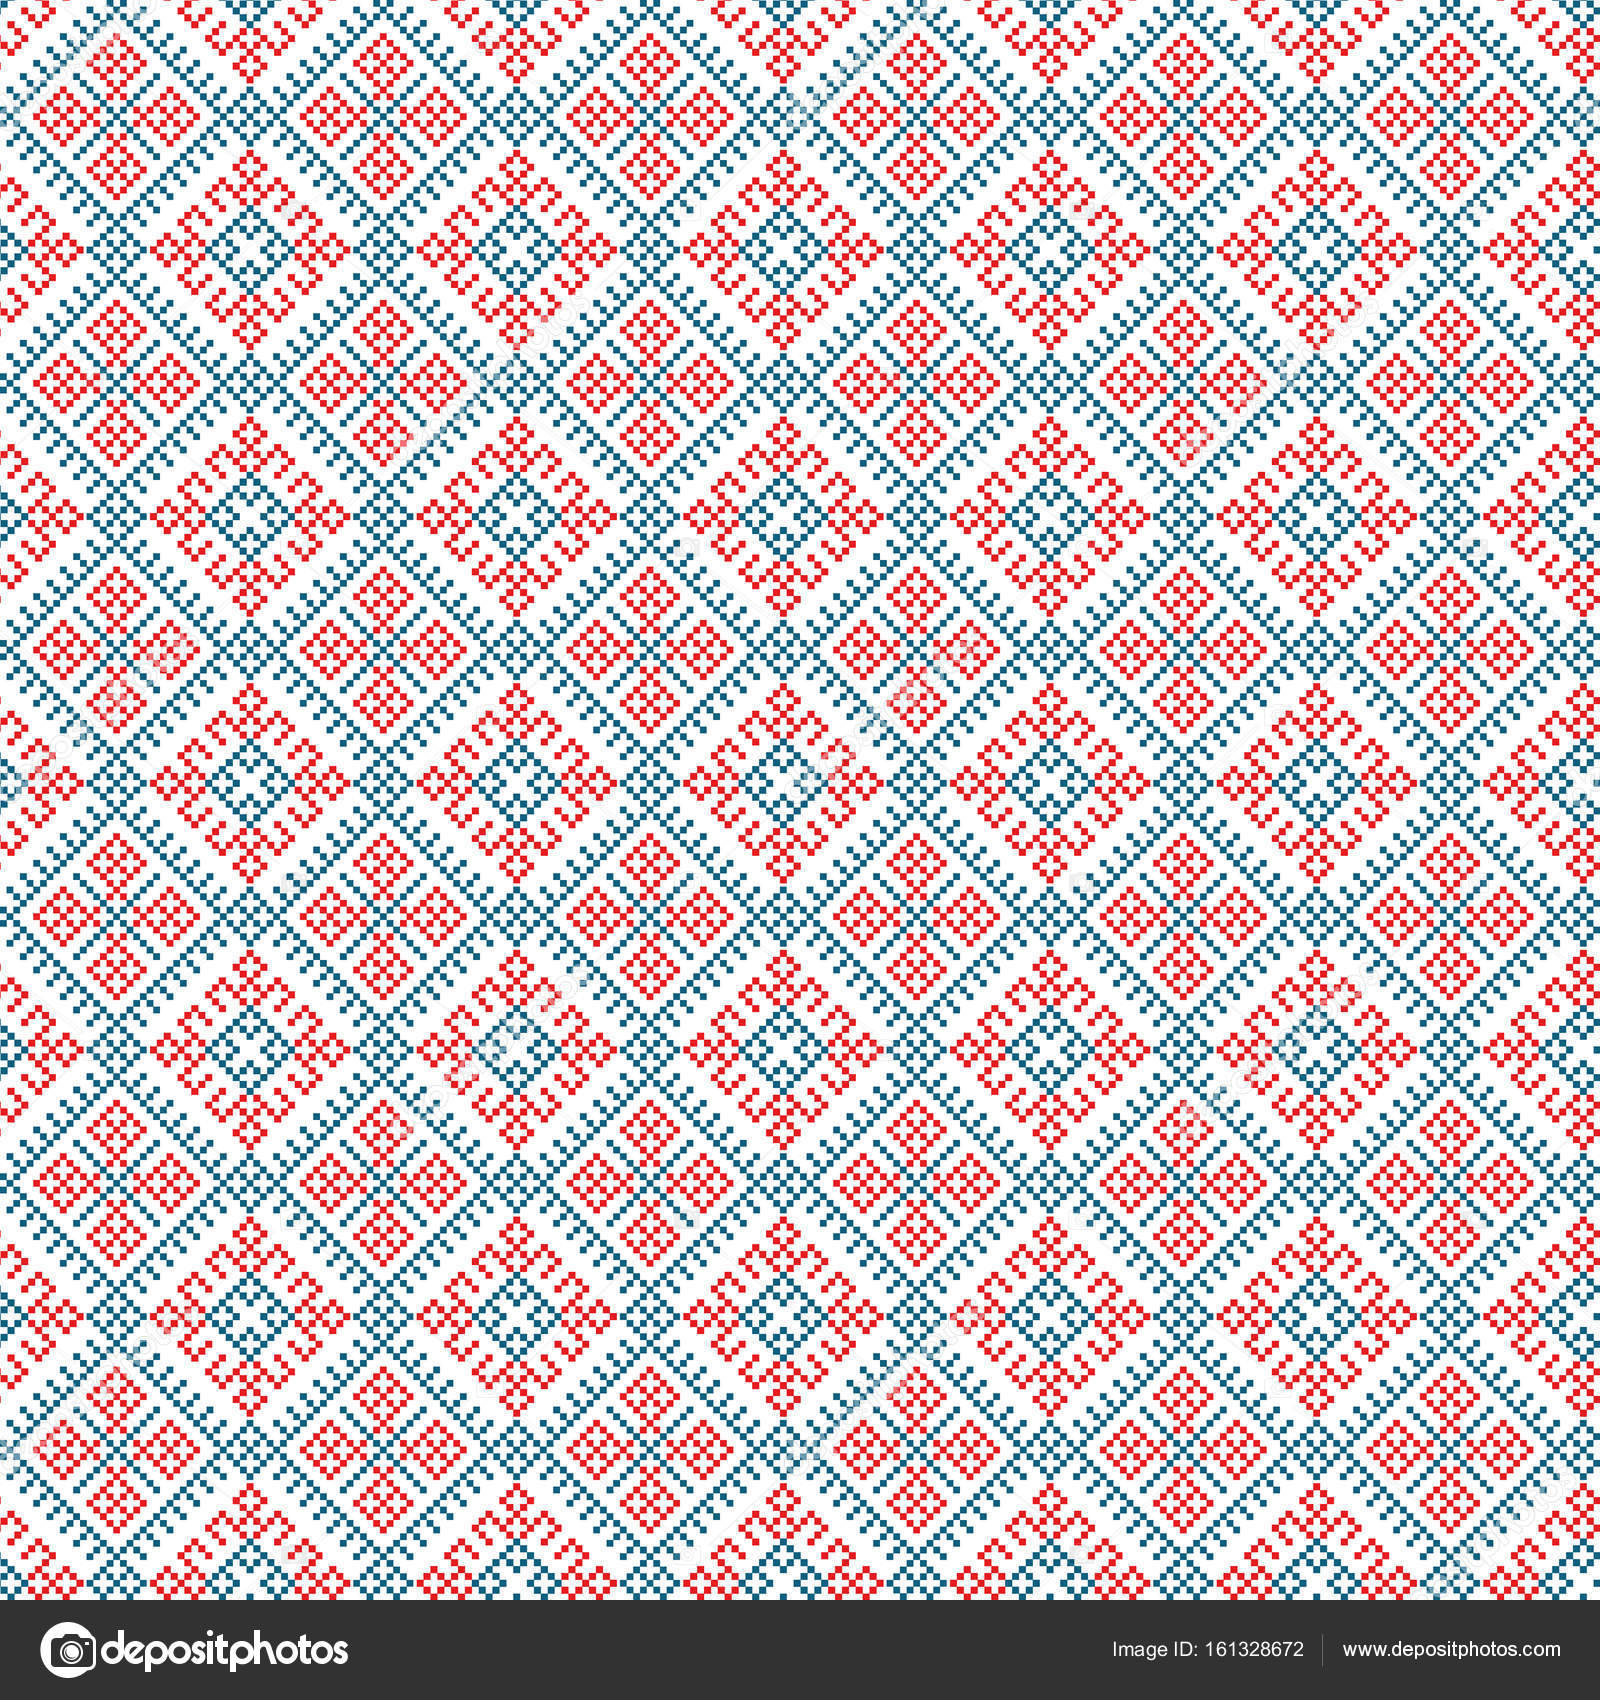 Ethnic Seamless Pattern Background Vector Illustration Traditional Textures In Red Blue And White